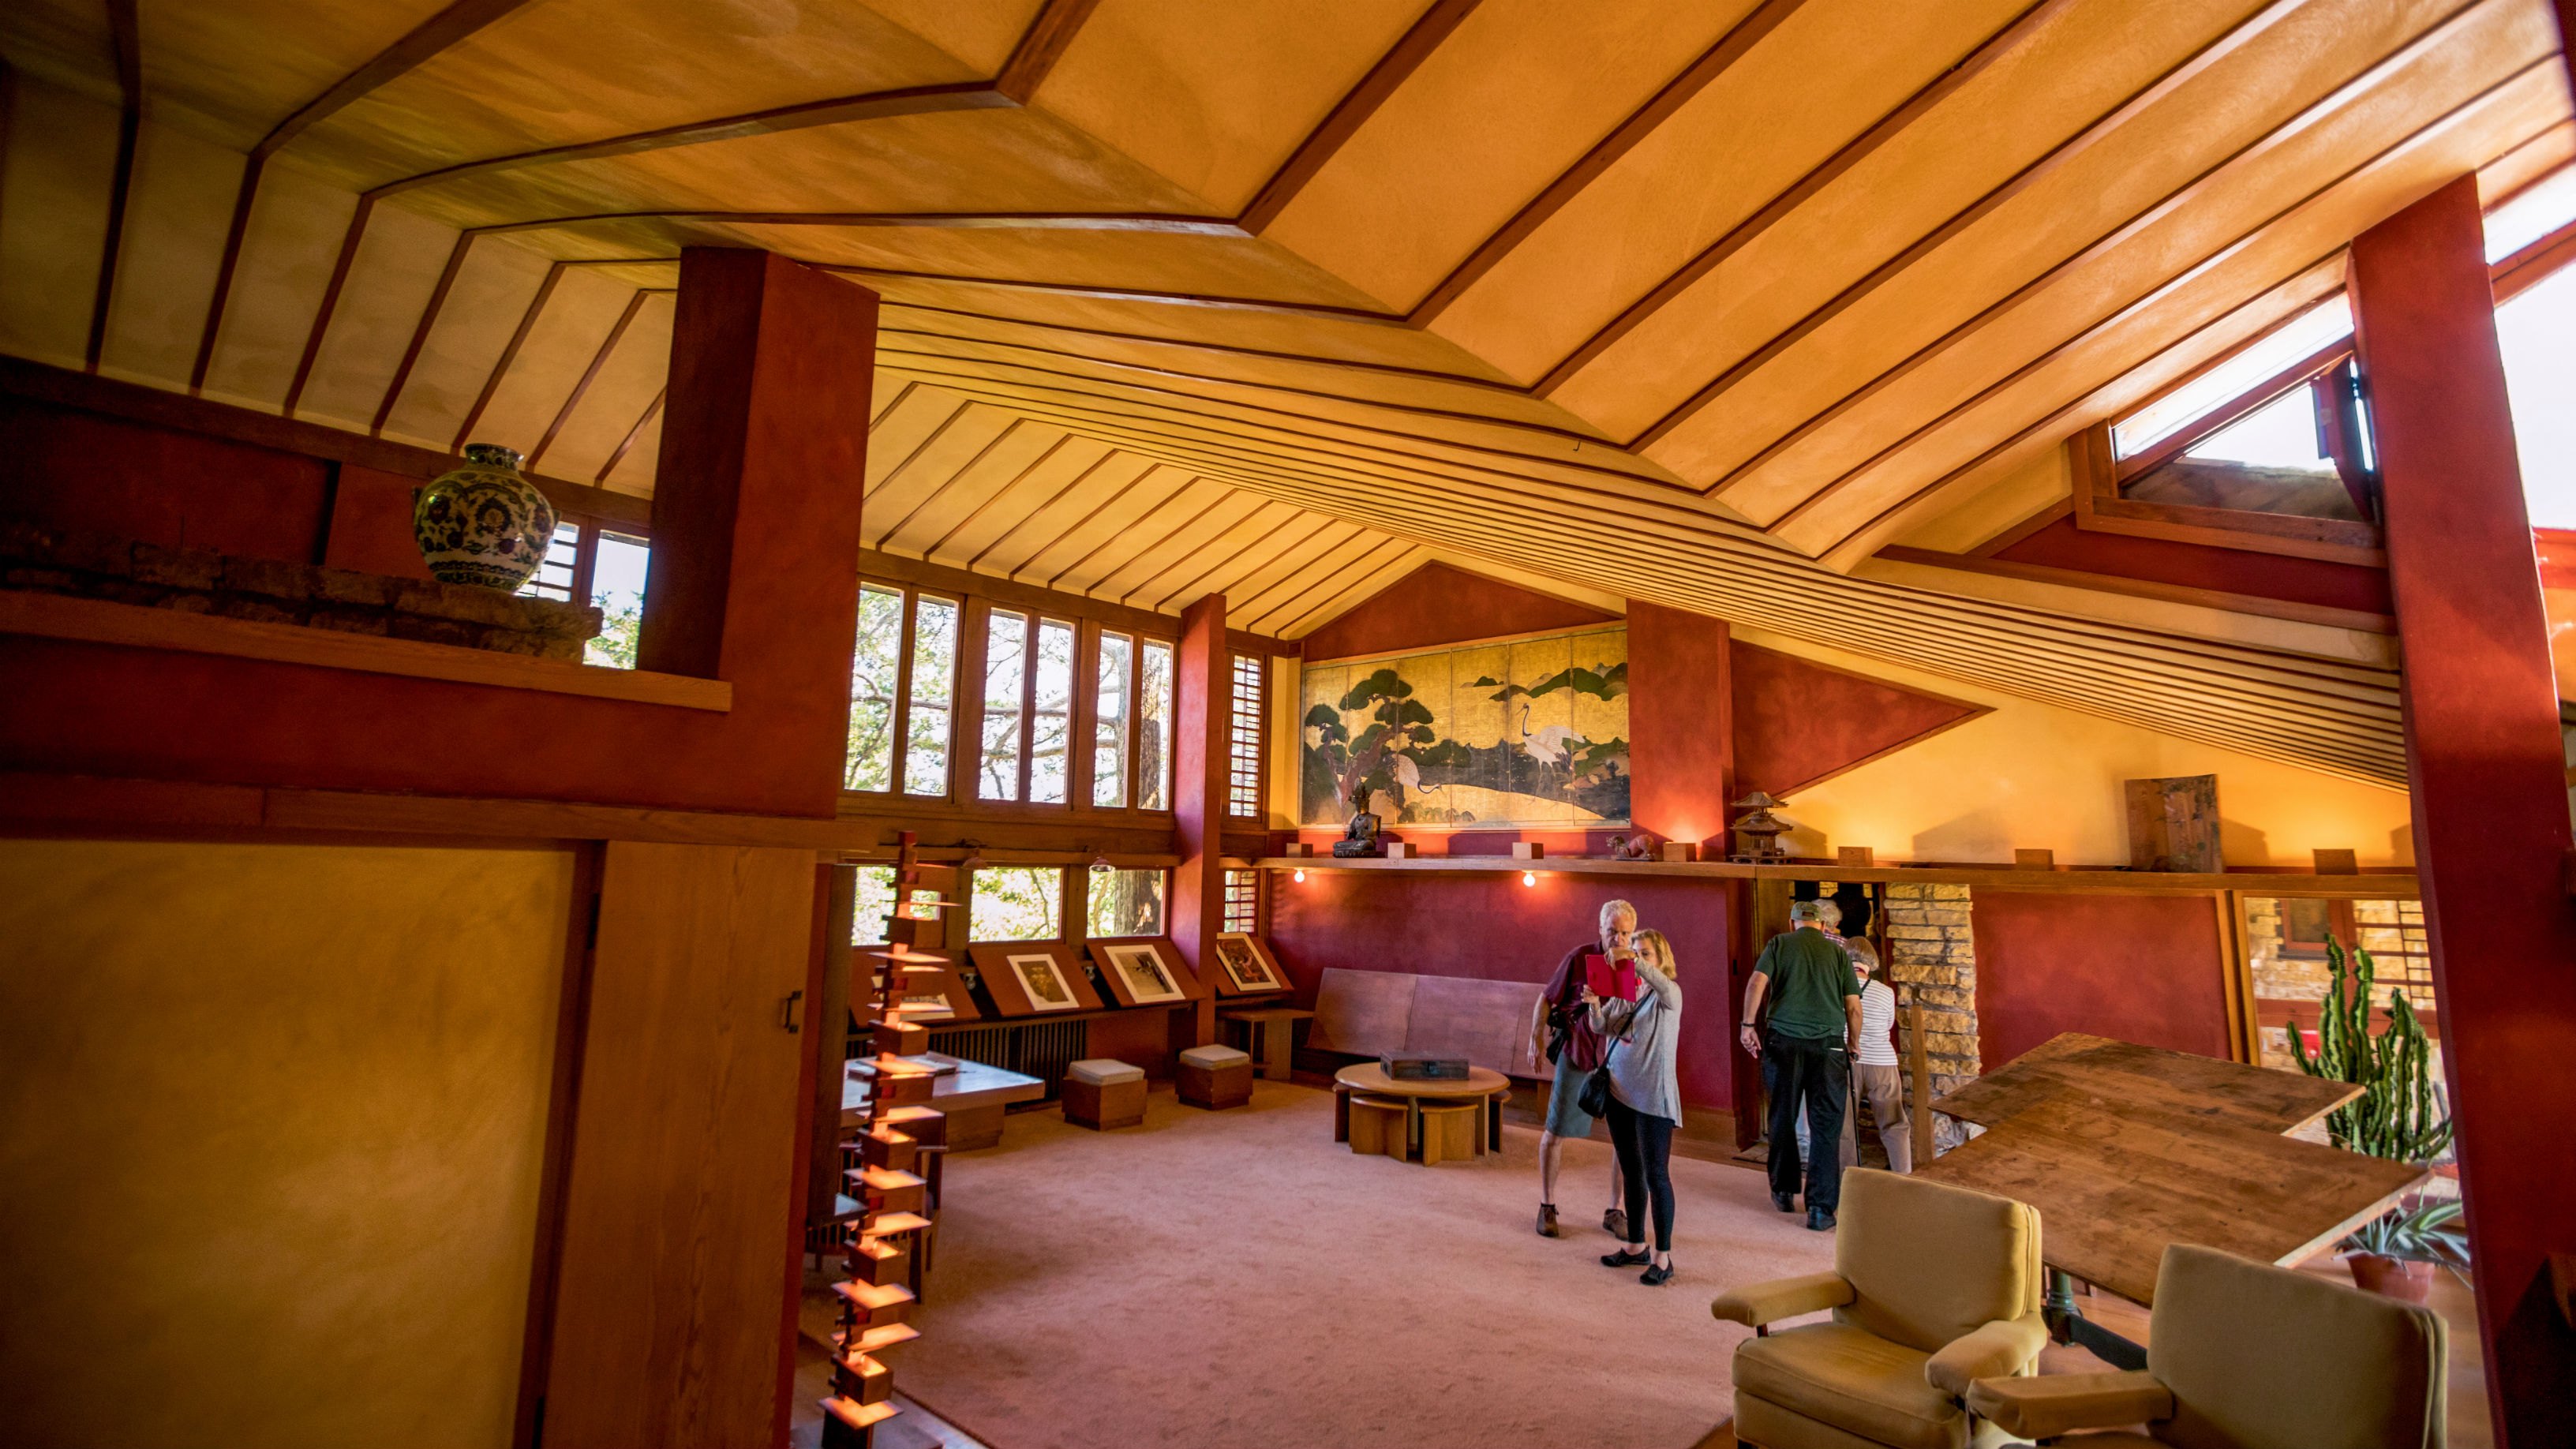 Frank Lloyd Wright Explore Frank Lloyd Wright Architecture Travel Wisconsin